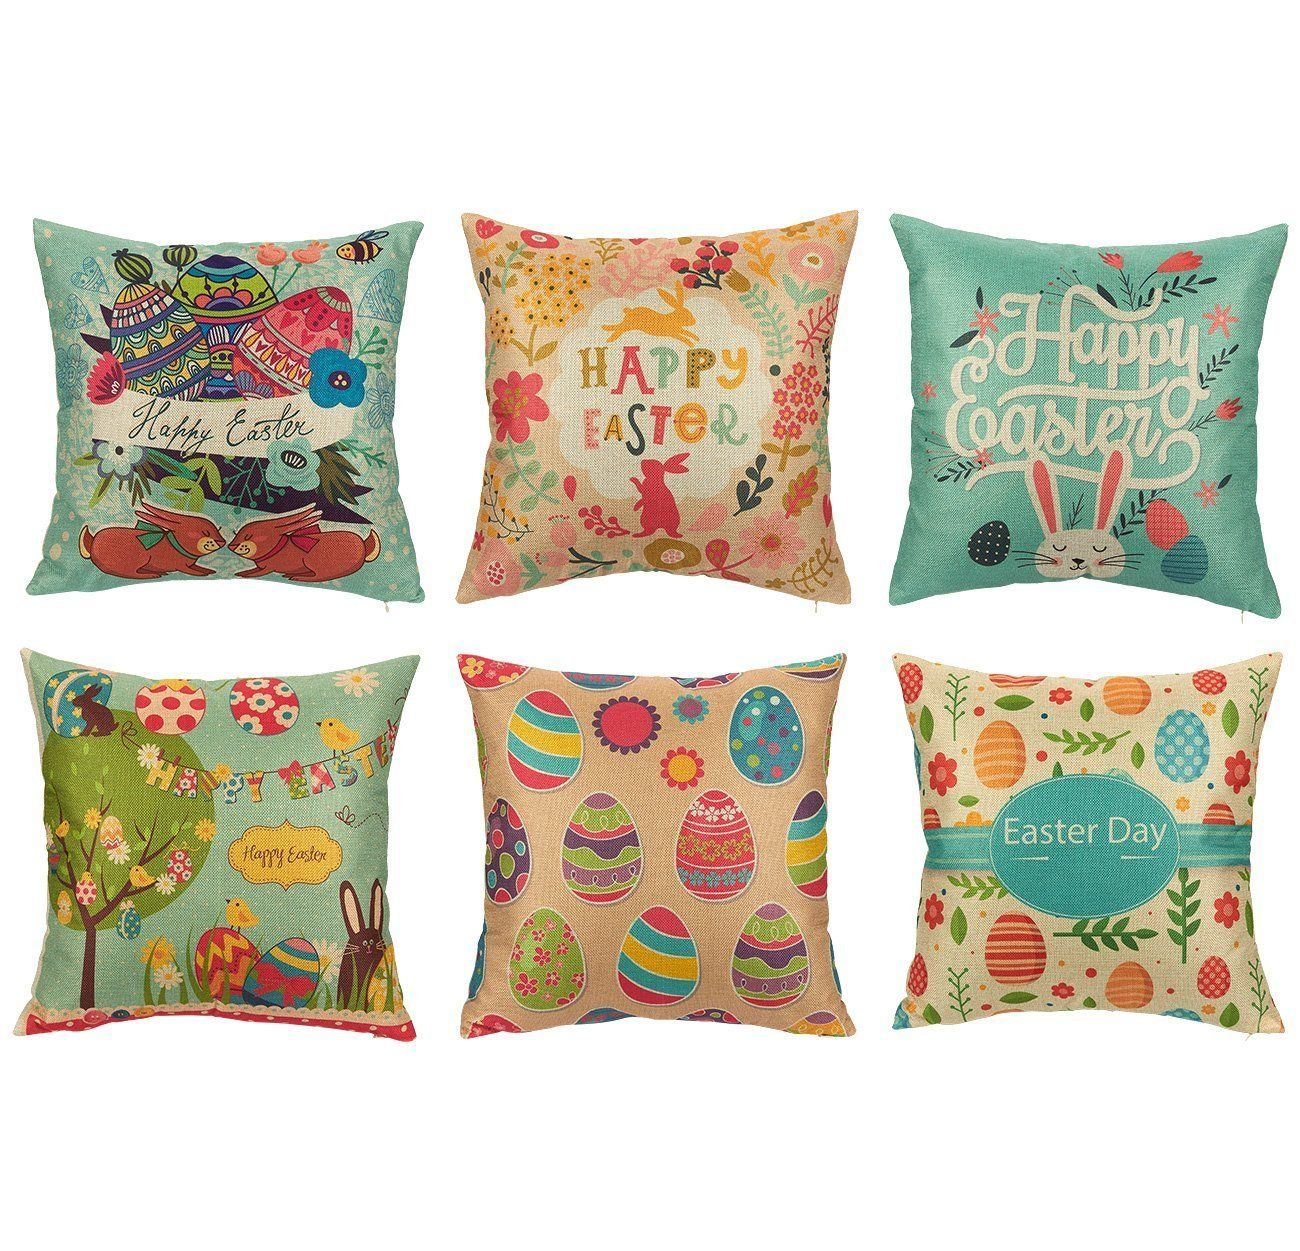 Easter Print - 18in x 18in - Pillow Covers by JuvaleEaster Print - 18in x 18in - Pillow Covers by Juvale